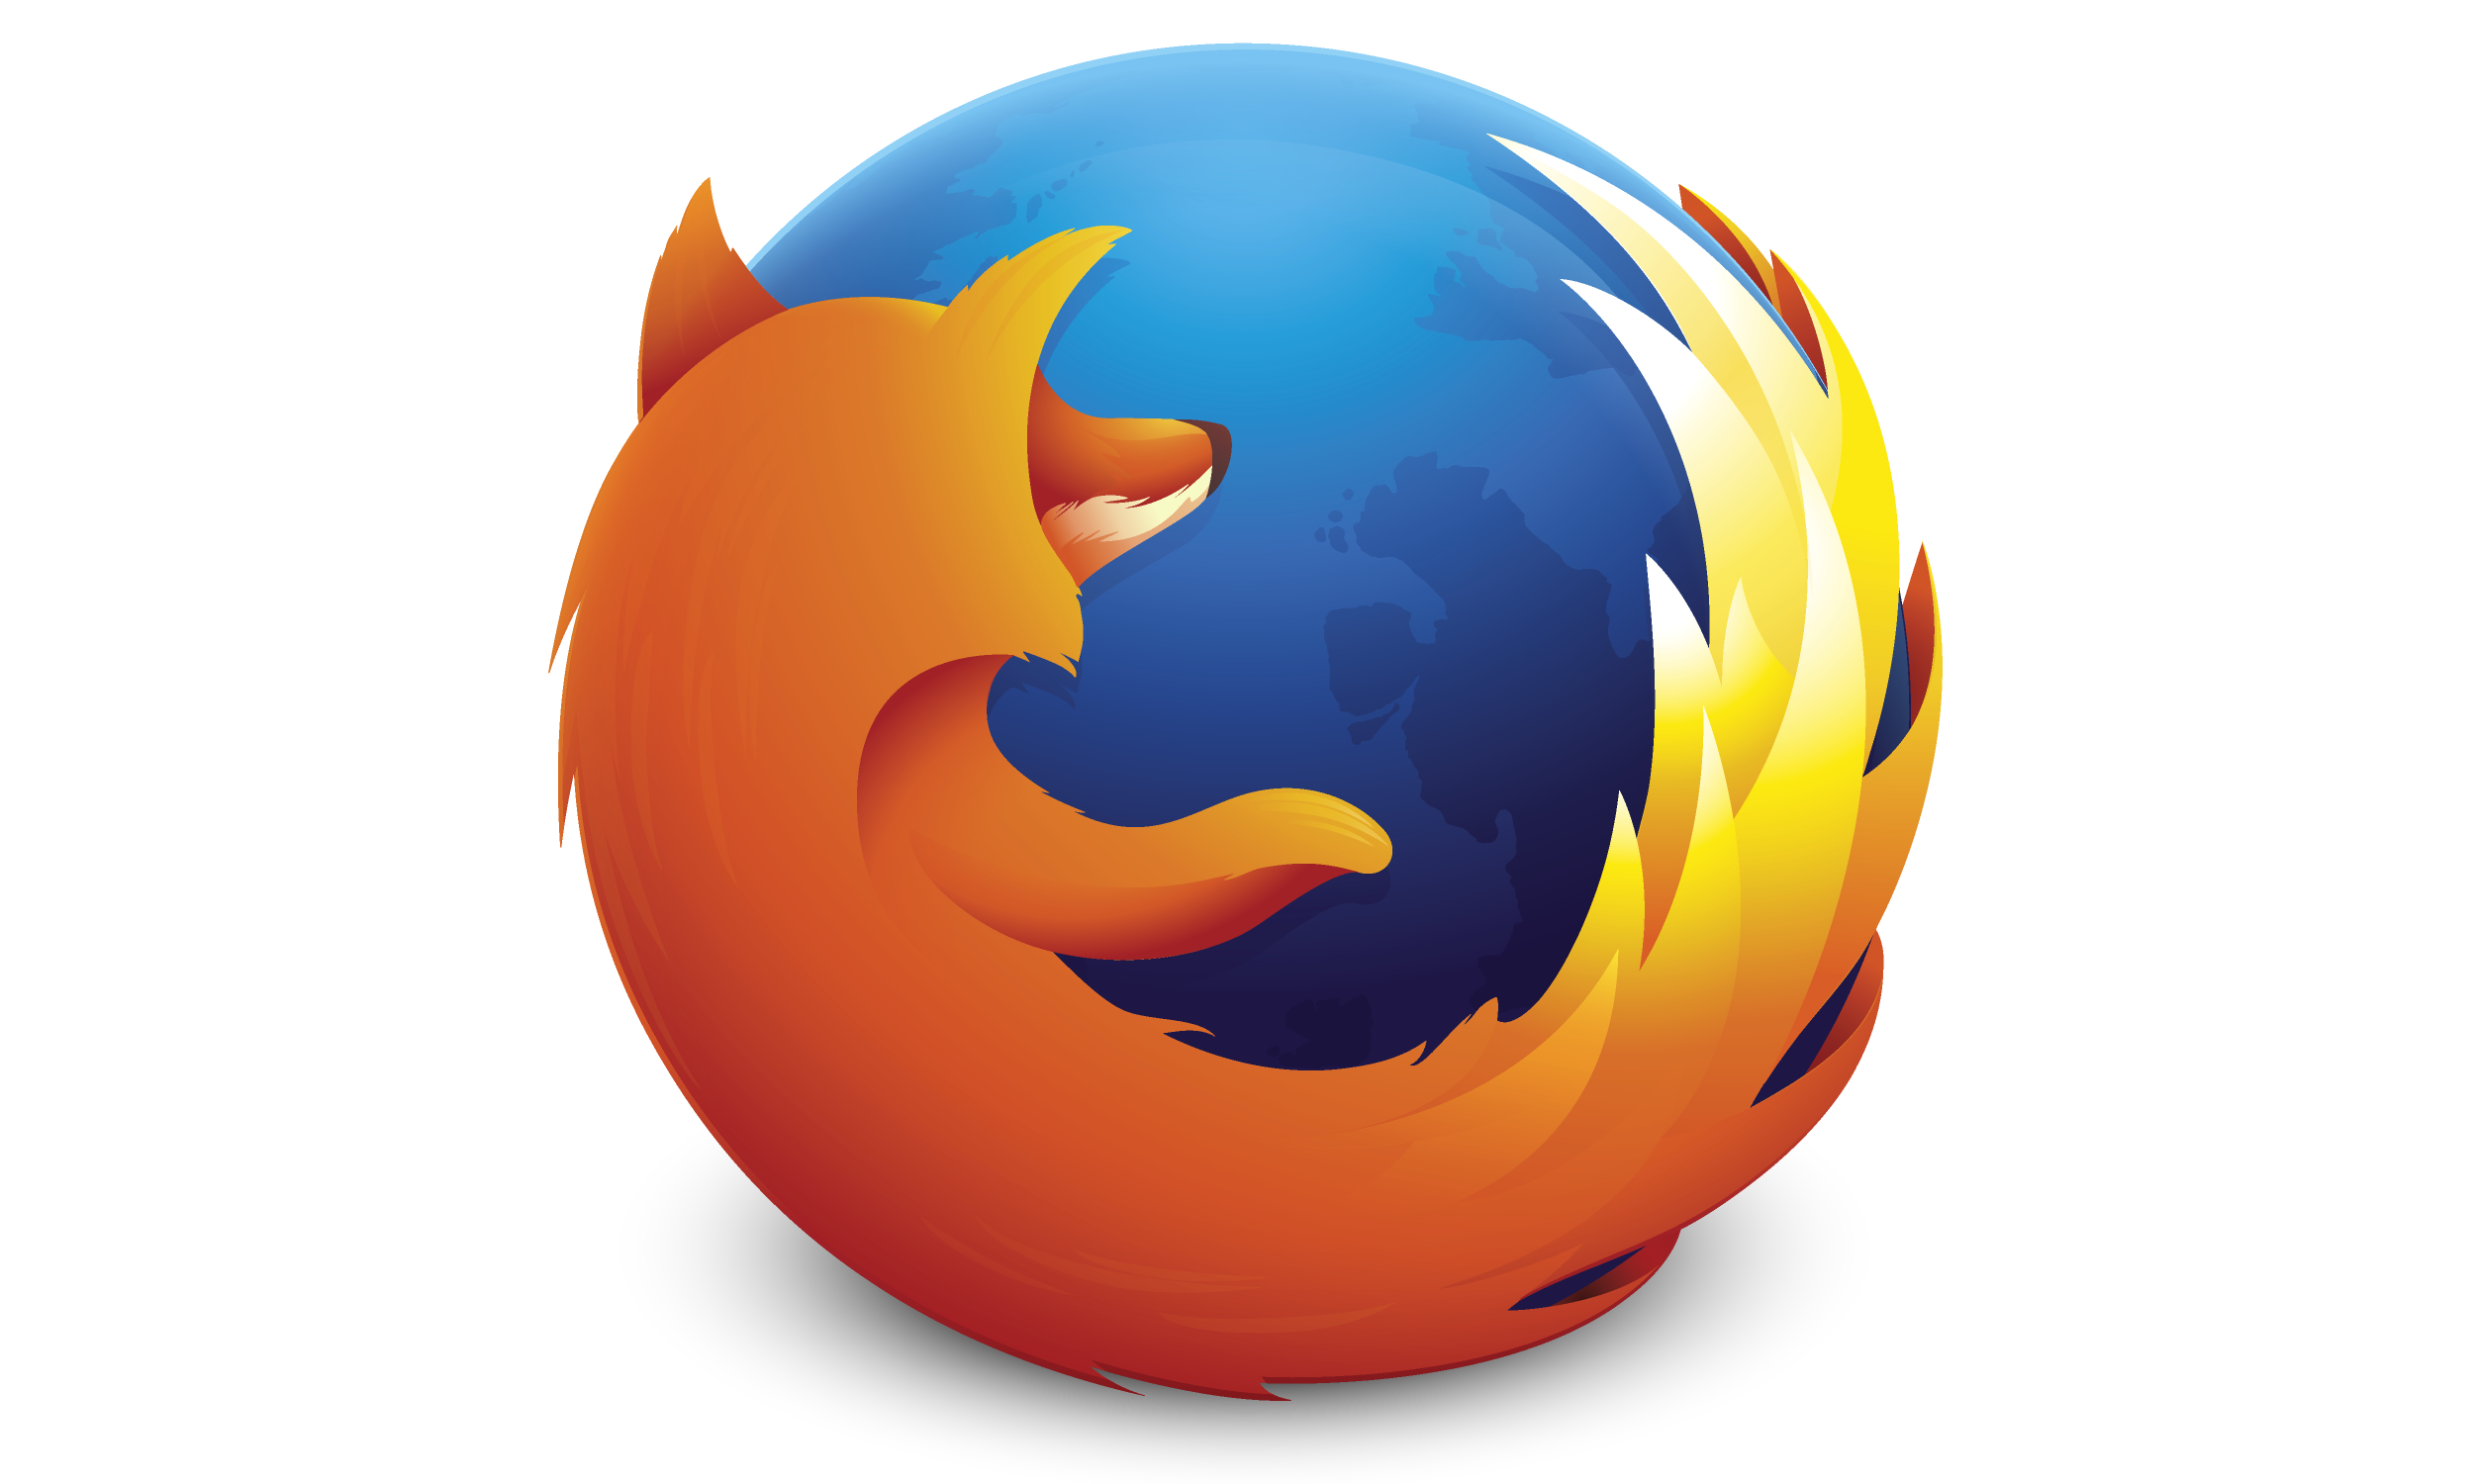 Firefox 26 is out for Windows, Mac, Linux, and Android